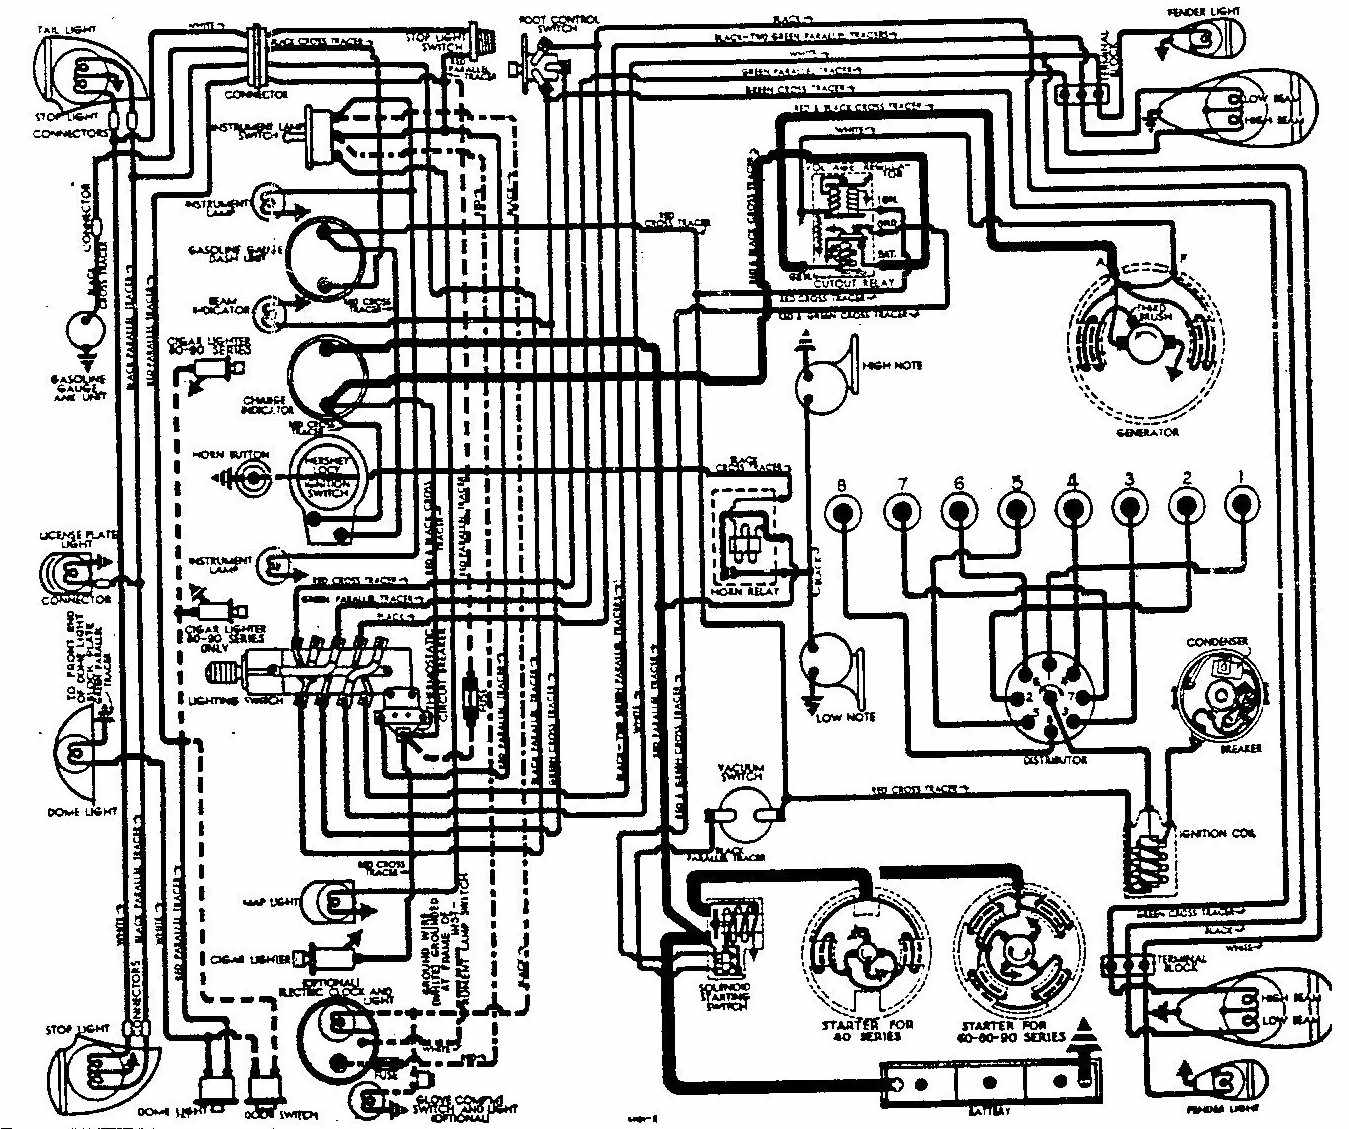 Buick+Roadmaster+1938+Electrical+Wiring+Diagram ford 7710 tractor wiring diagram ford discover your wiring Ford Tractor Wiring Harness Diagram at sewacar.co